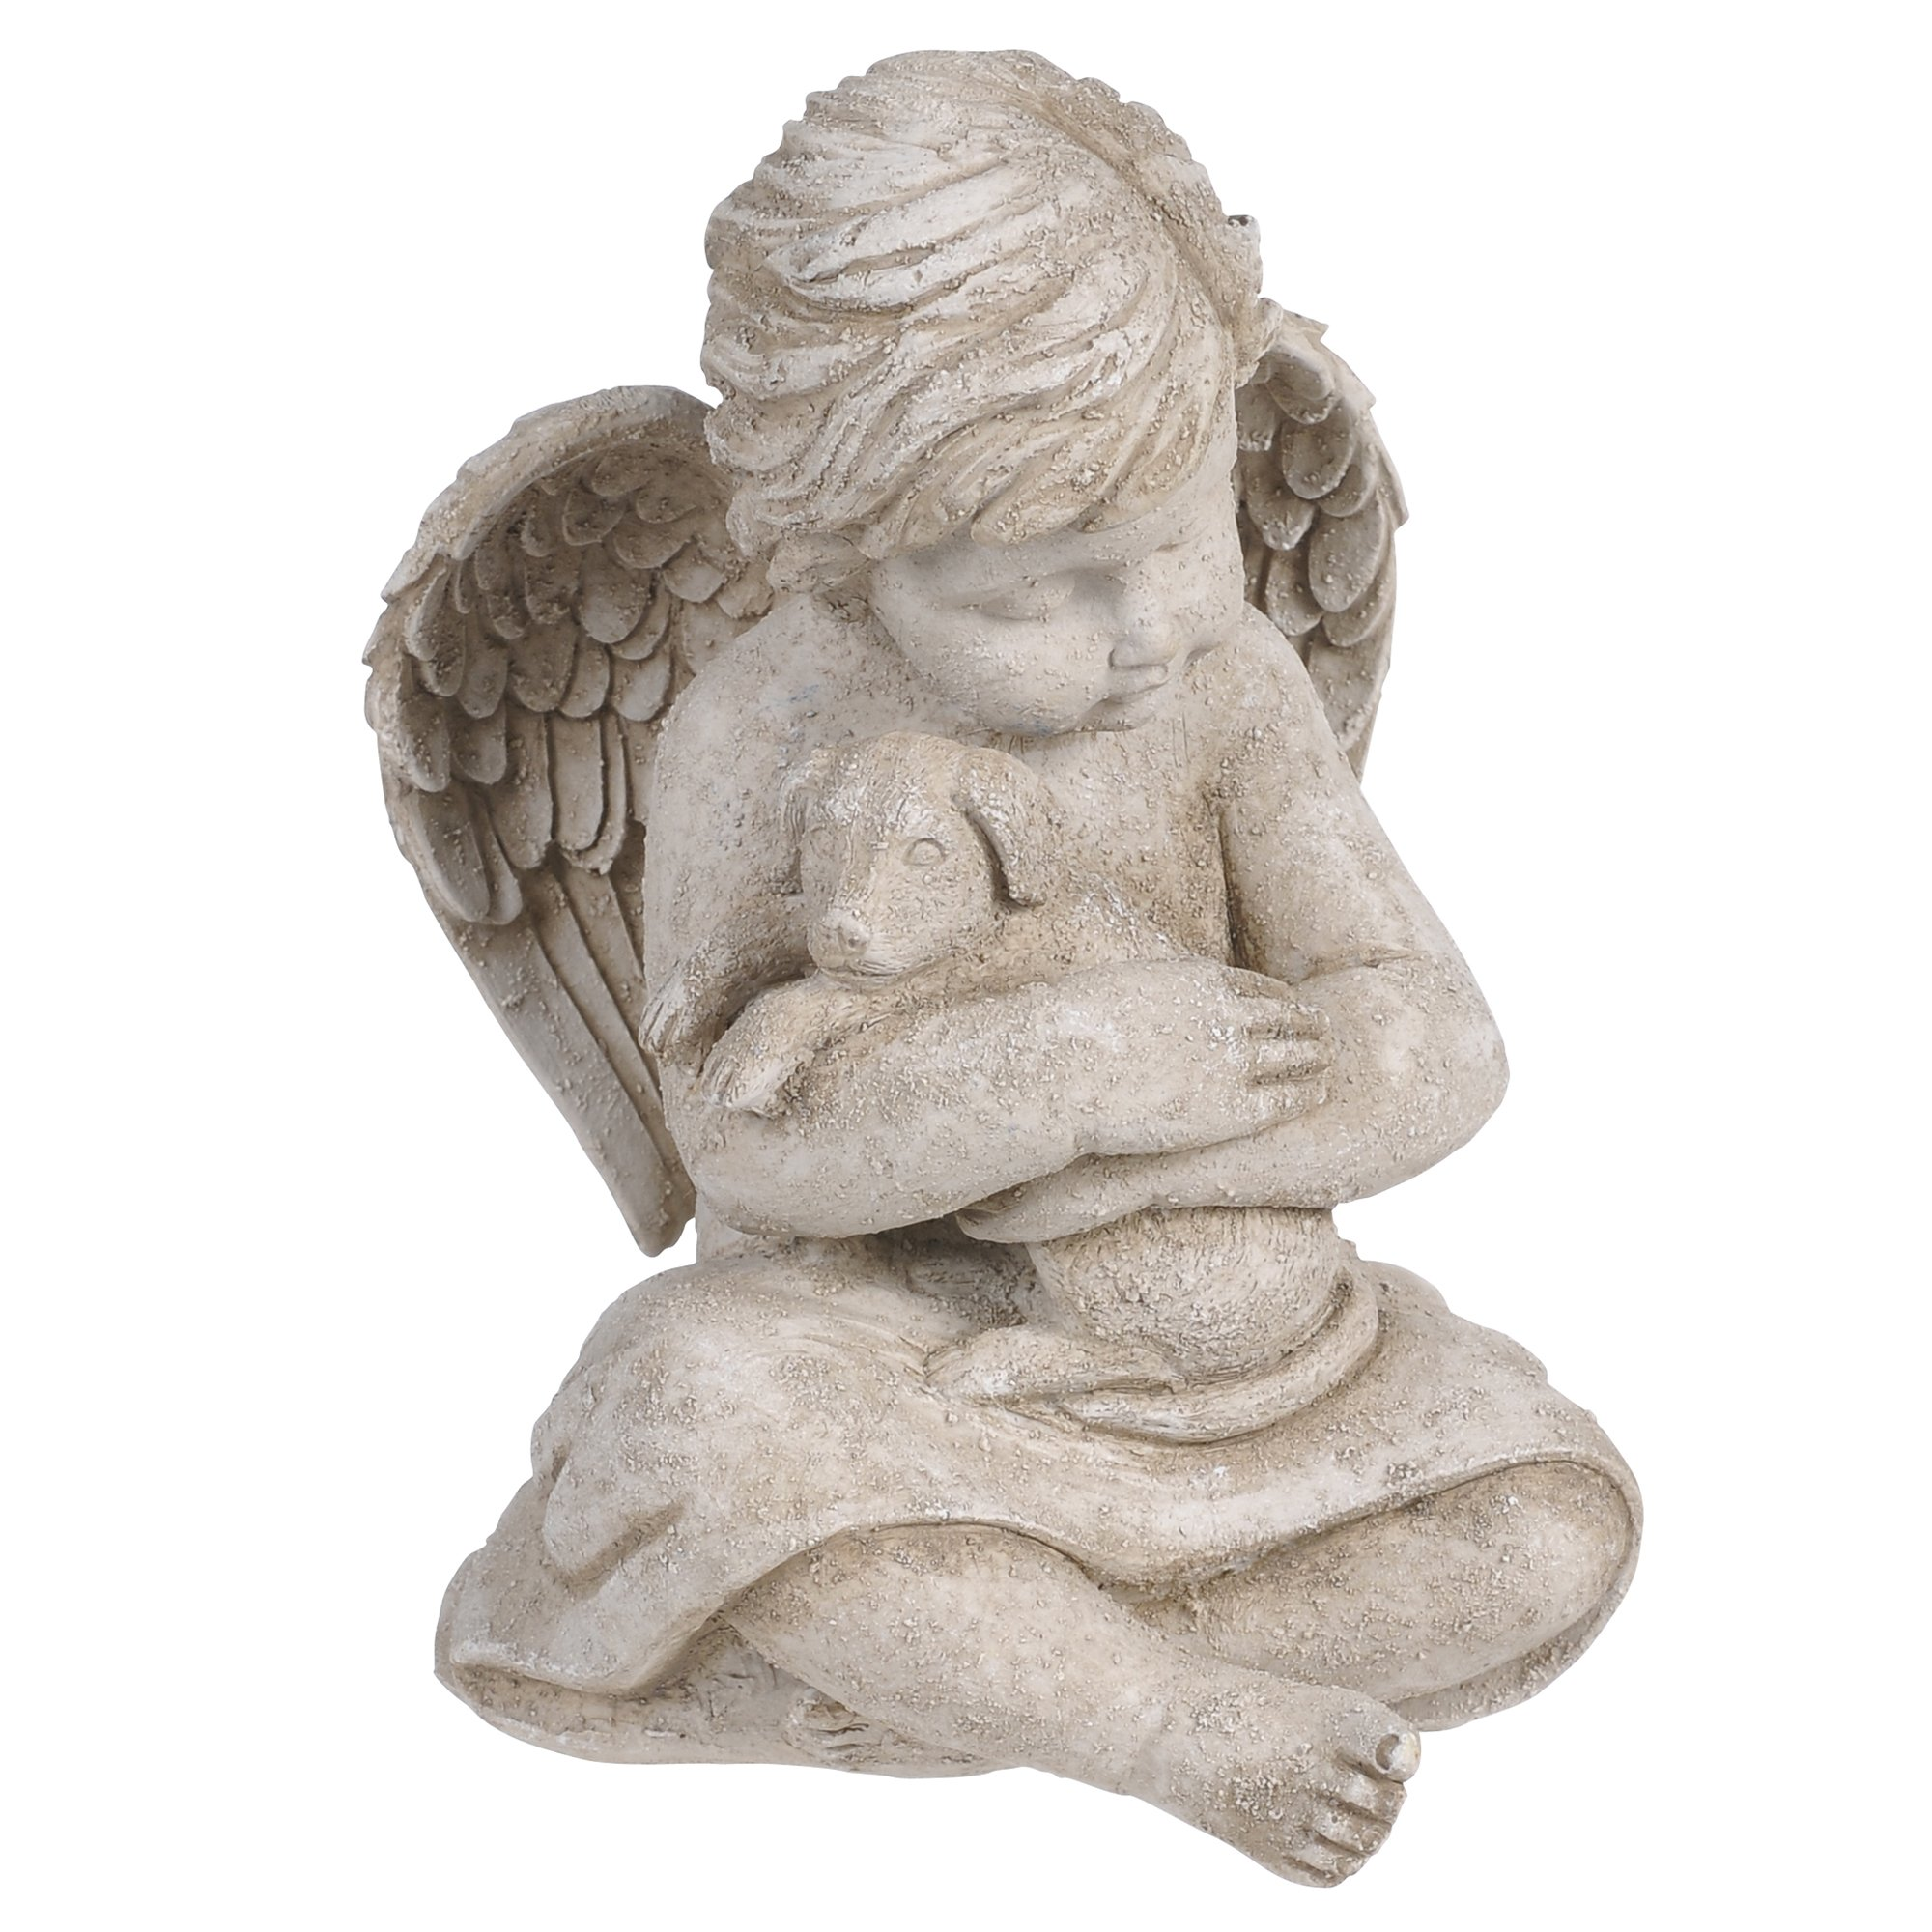 Grasslands Road Cherub with Dog, 7-Inch, Gift Boxed by Grasslands Road (Image #1)